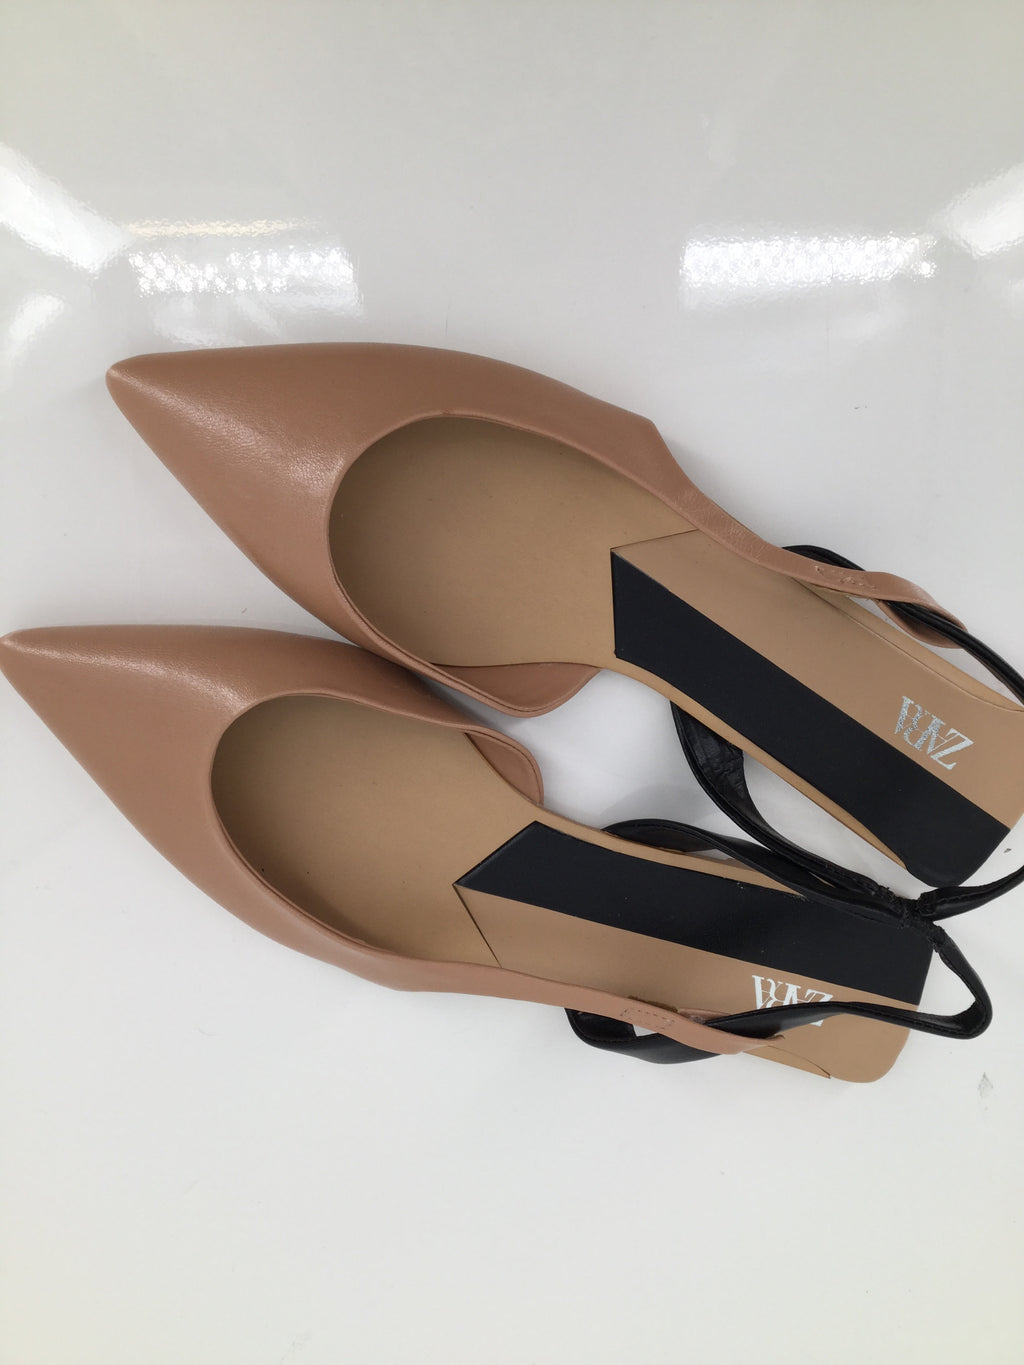 Zara Basic Shoes Flats Size:10